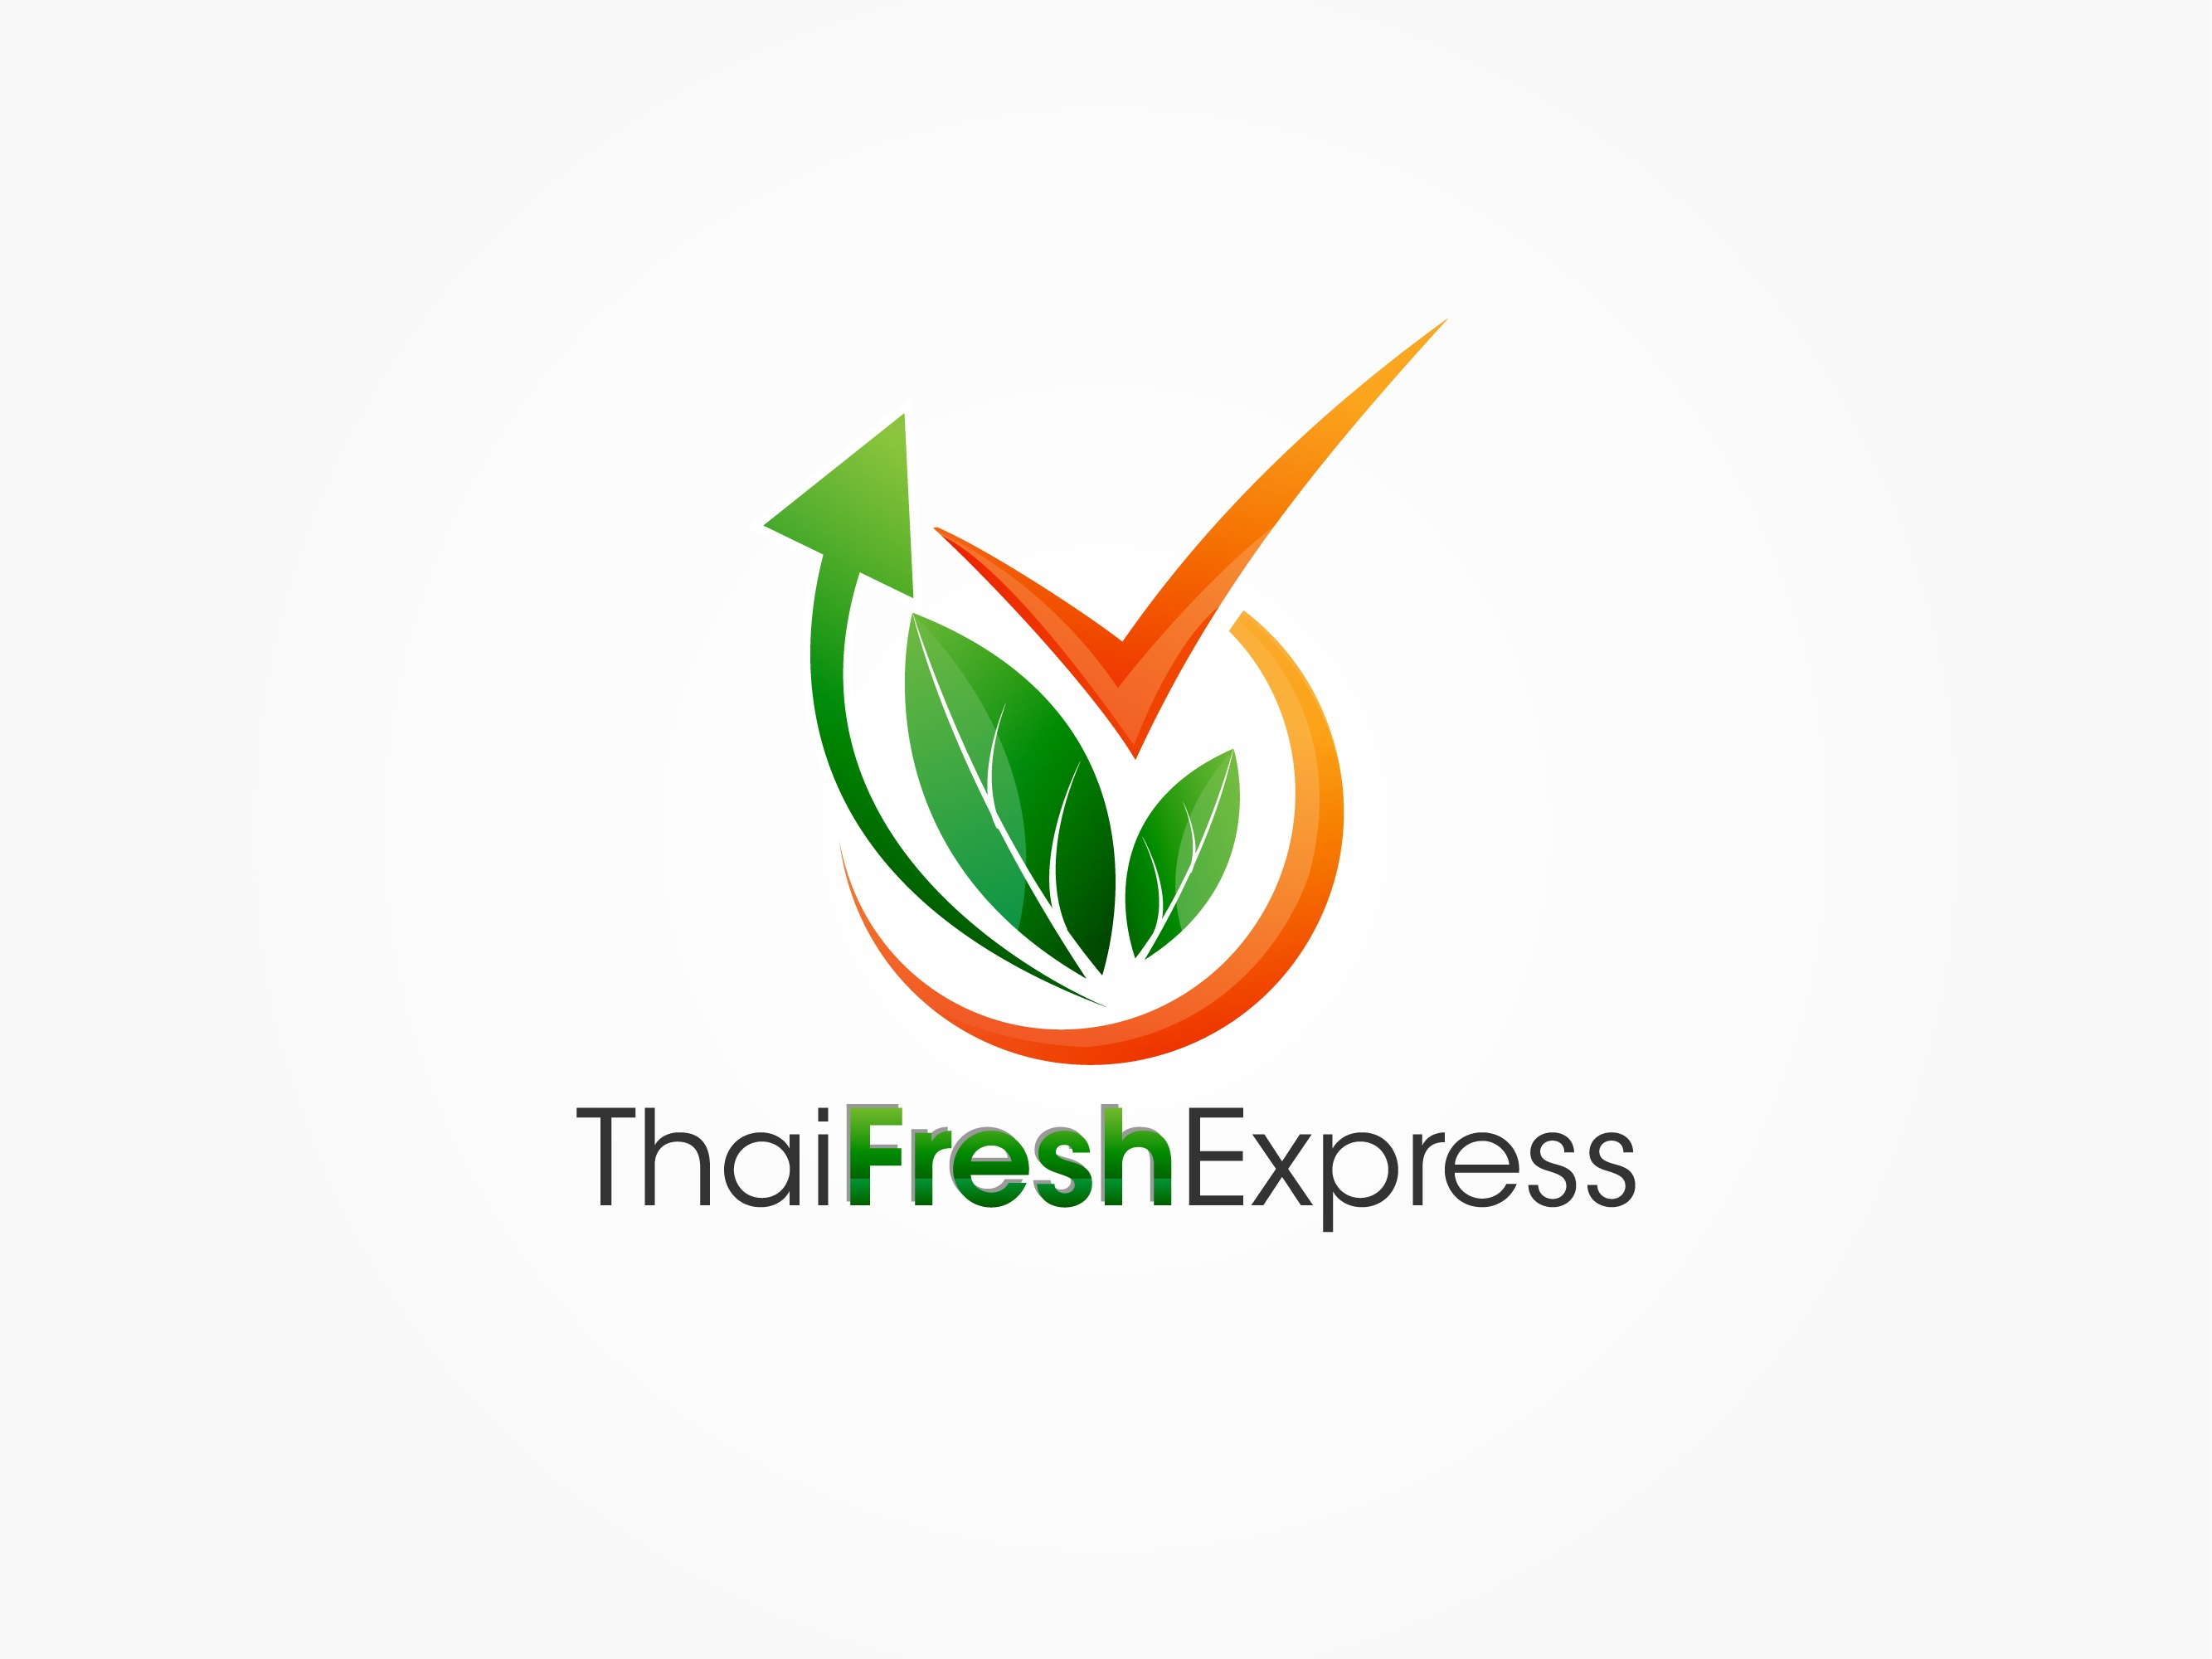 THAIFRESHEXPRESS LOGO